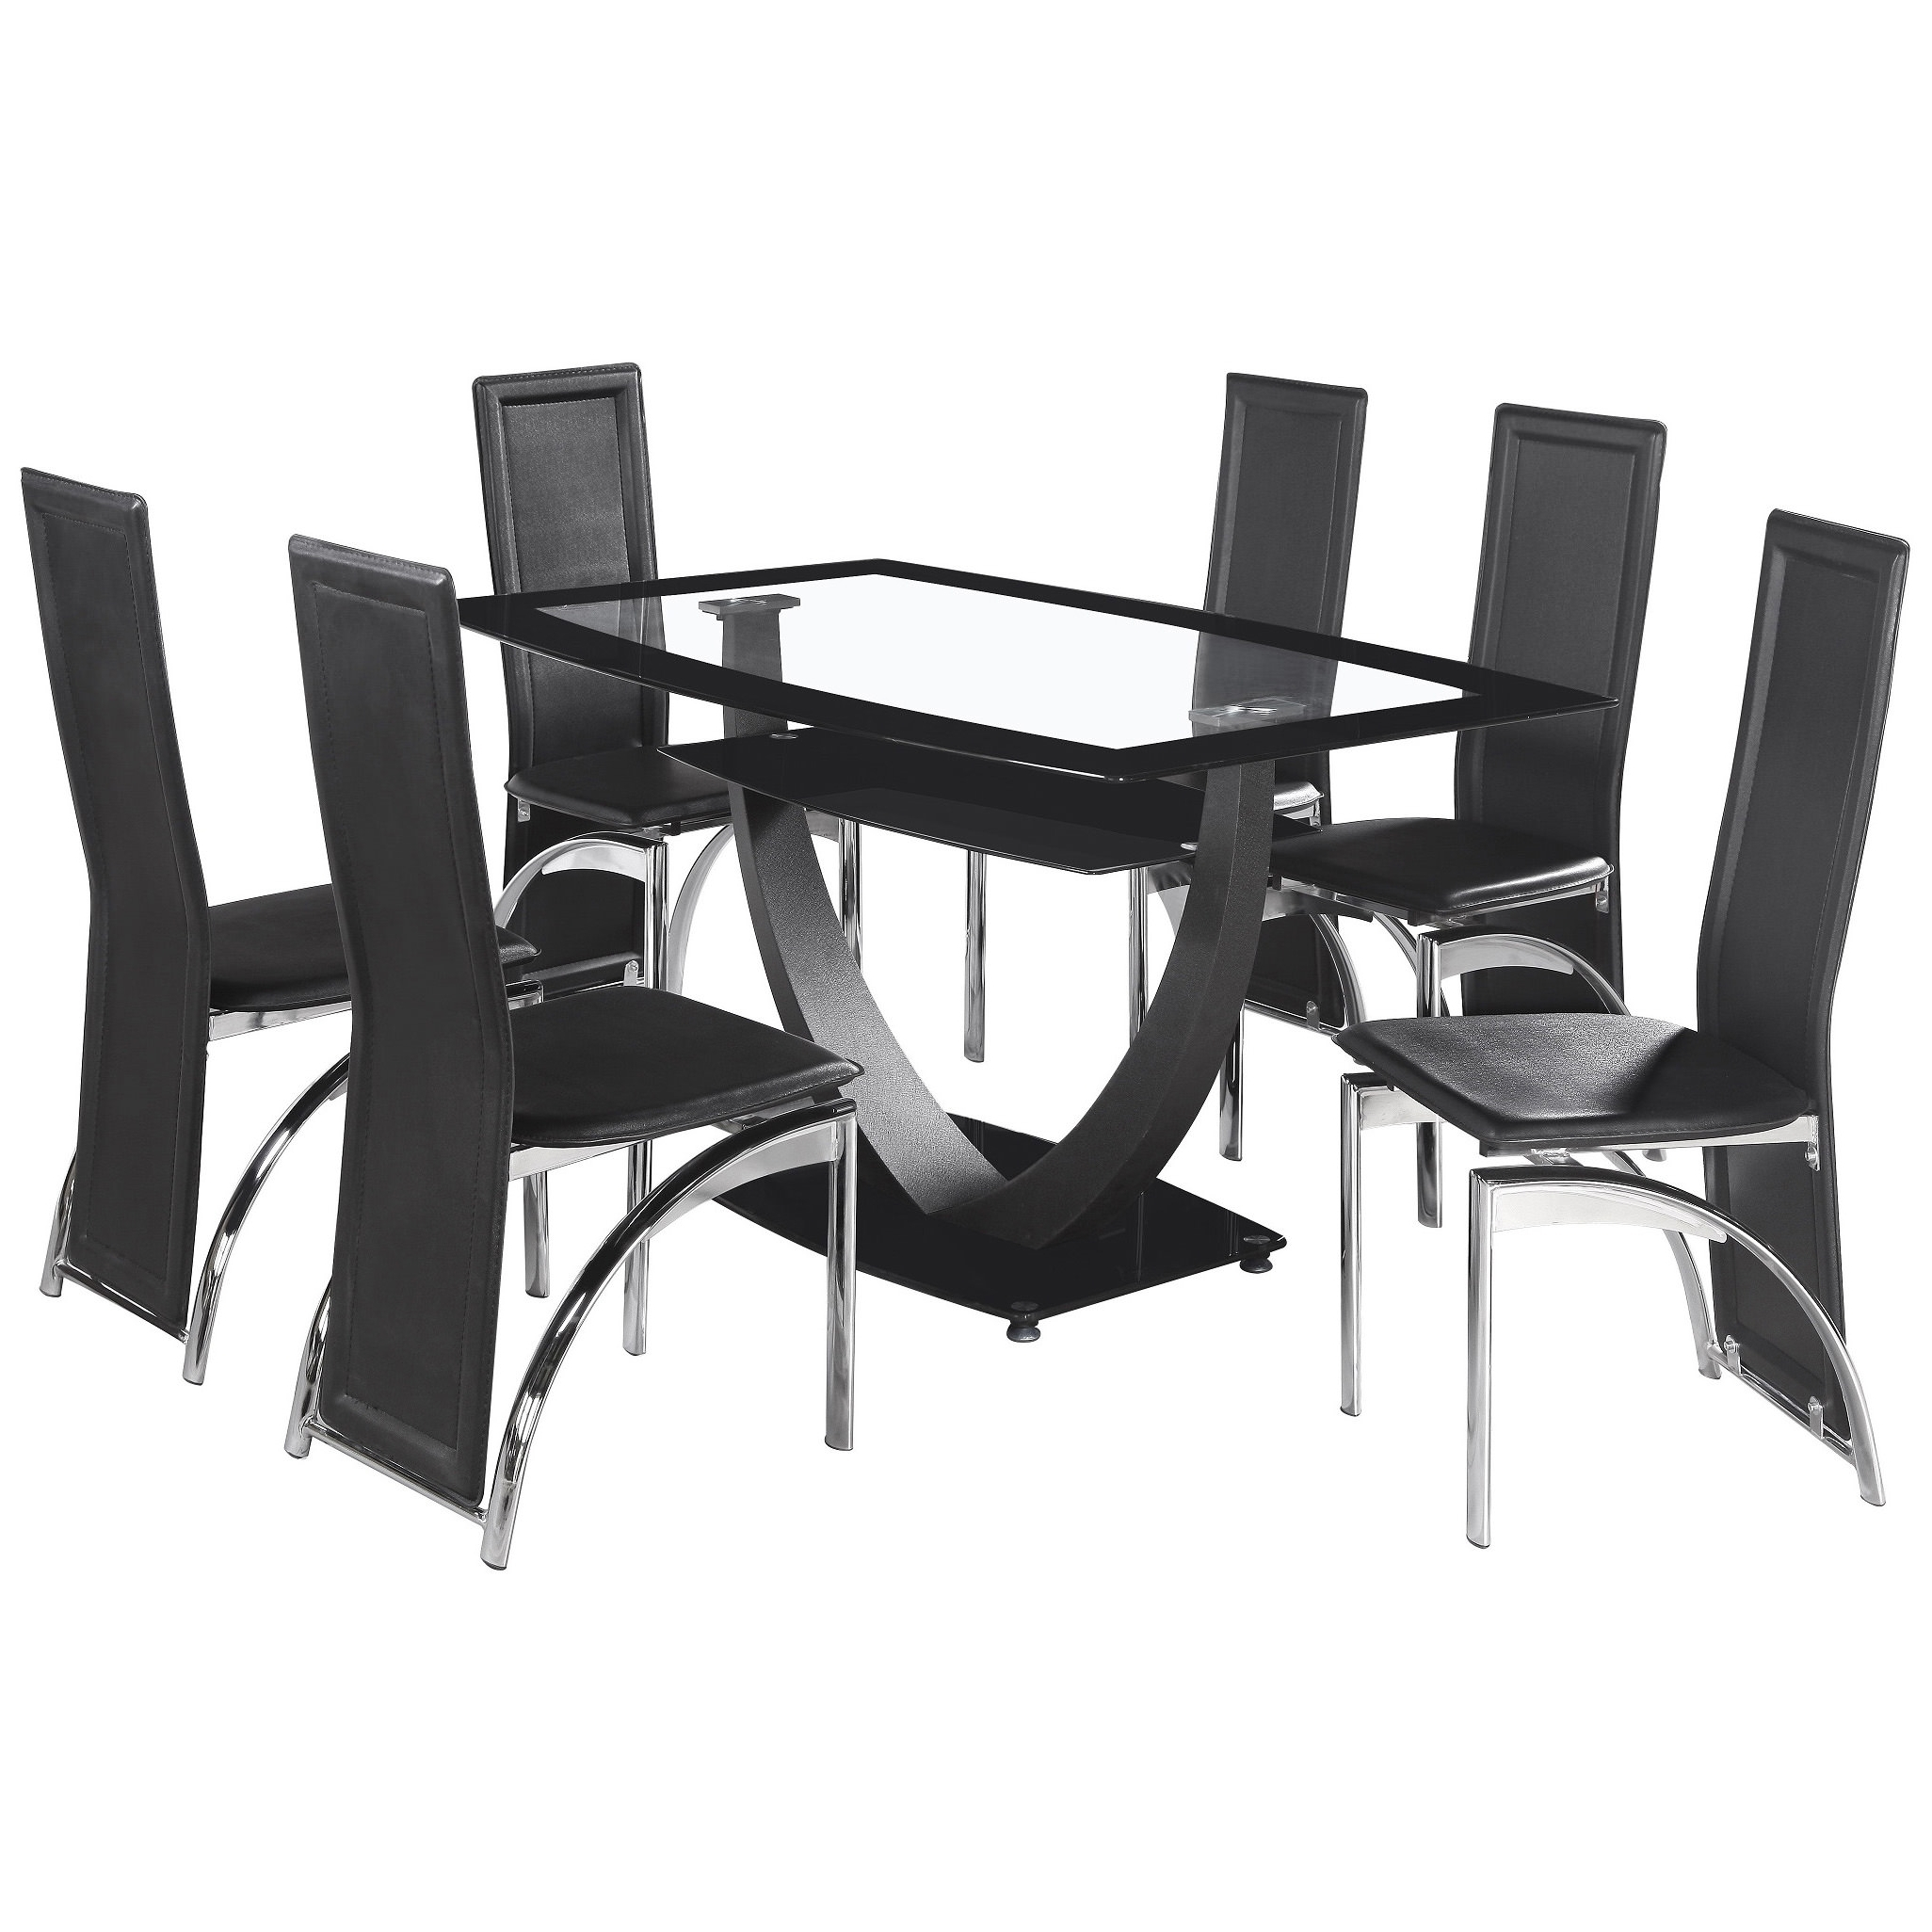 Clear Glass Dining Tables And Chairs Throughout Most Recently Released Details About Black & Clear Glass Dining Table And Chair Set With 6 Leather  Seats (Gallery 22 of 25)